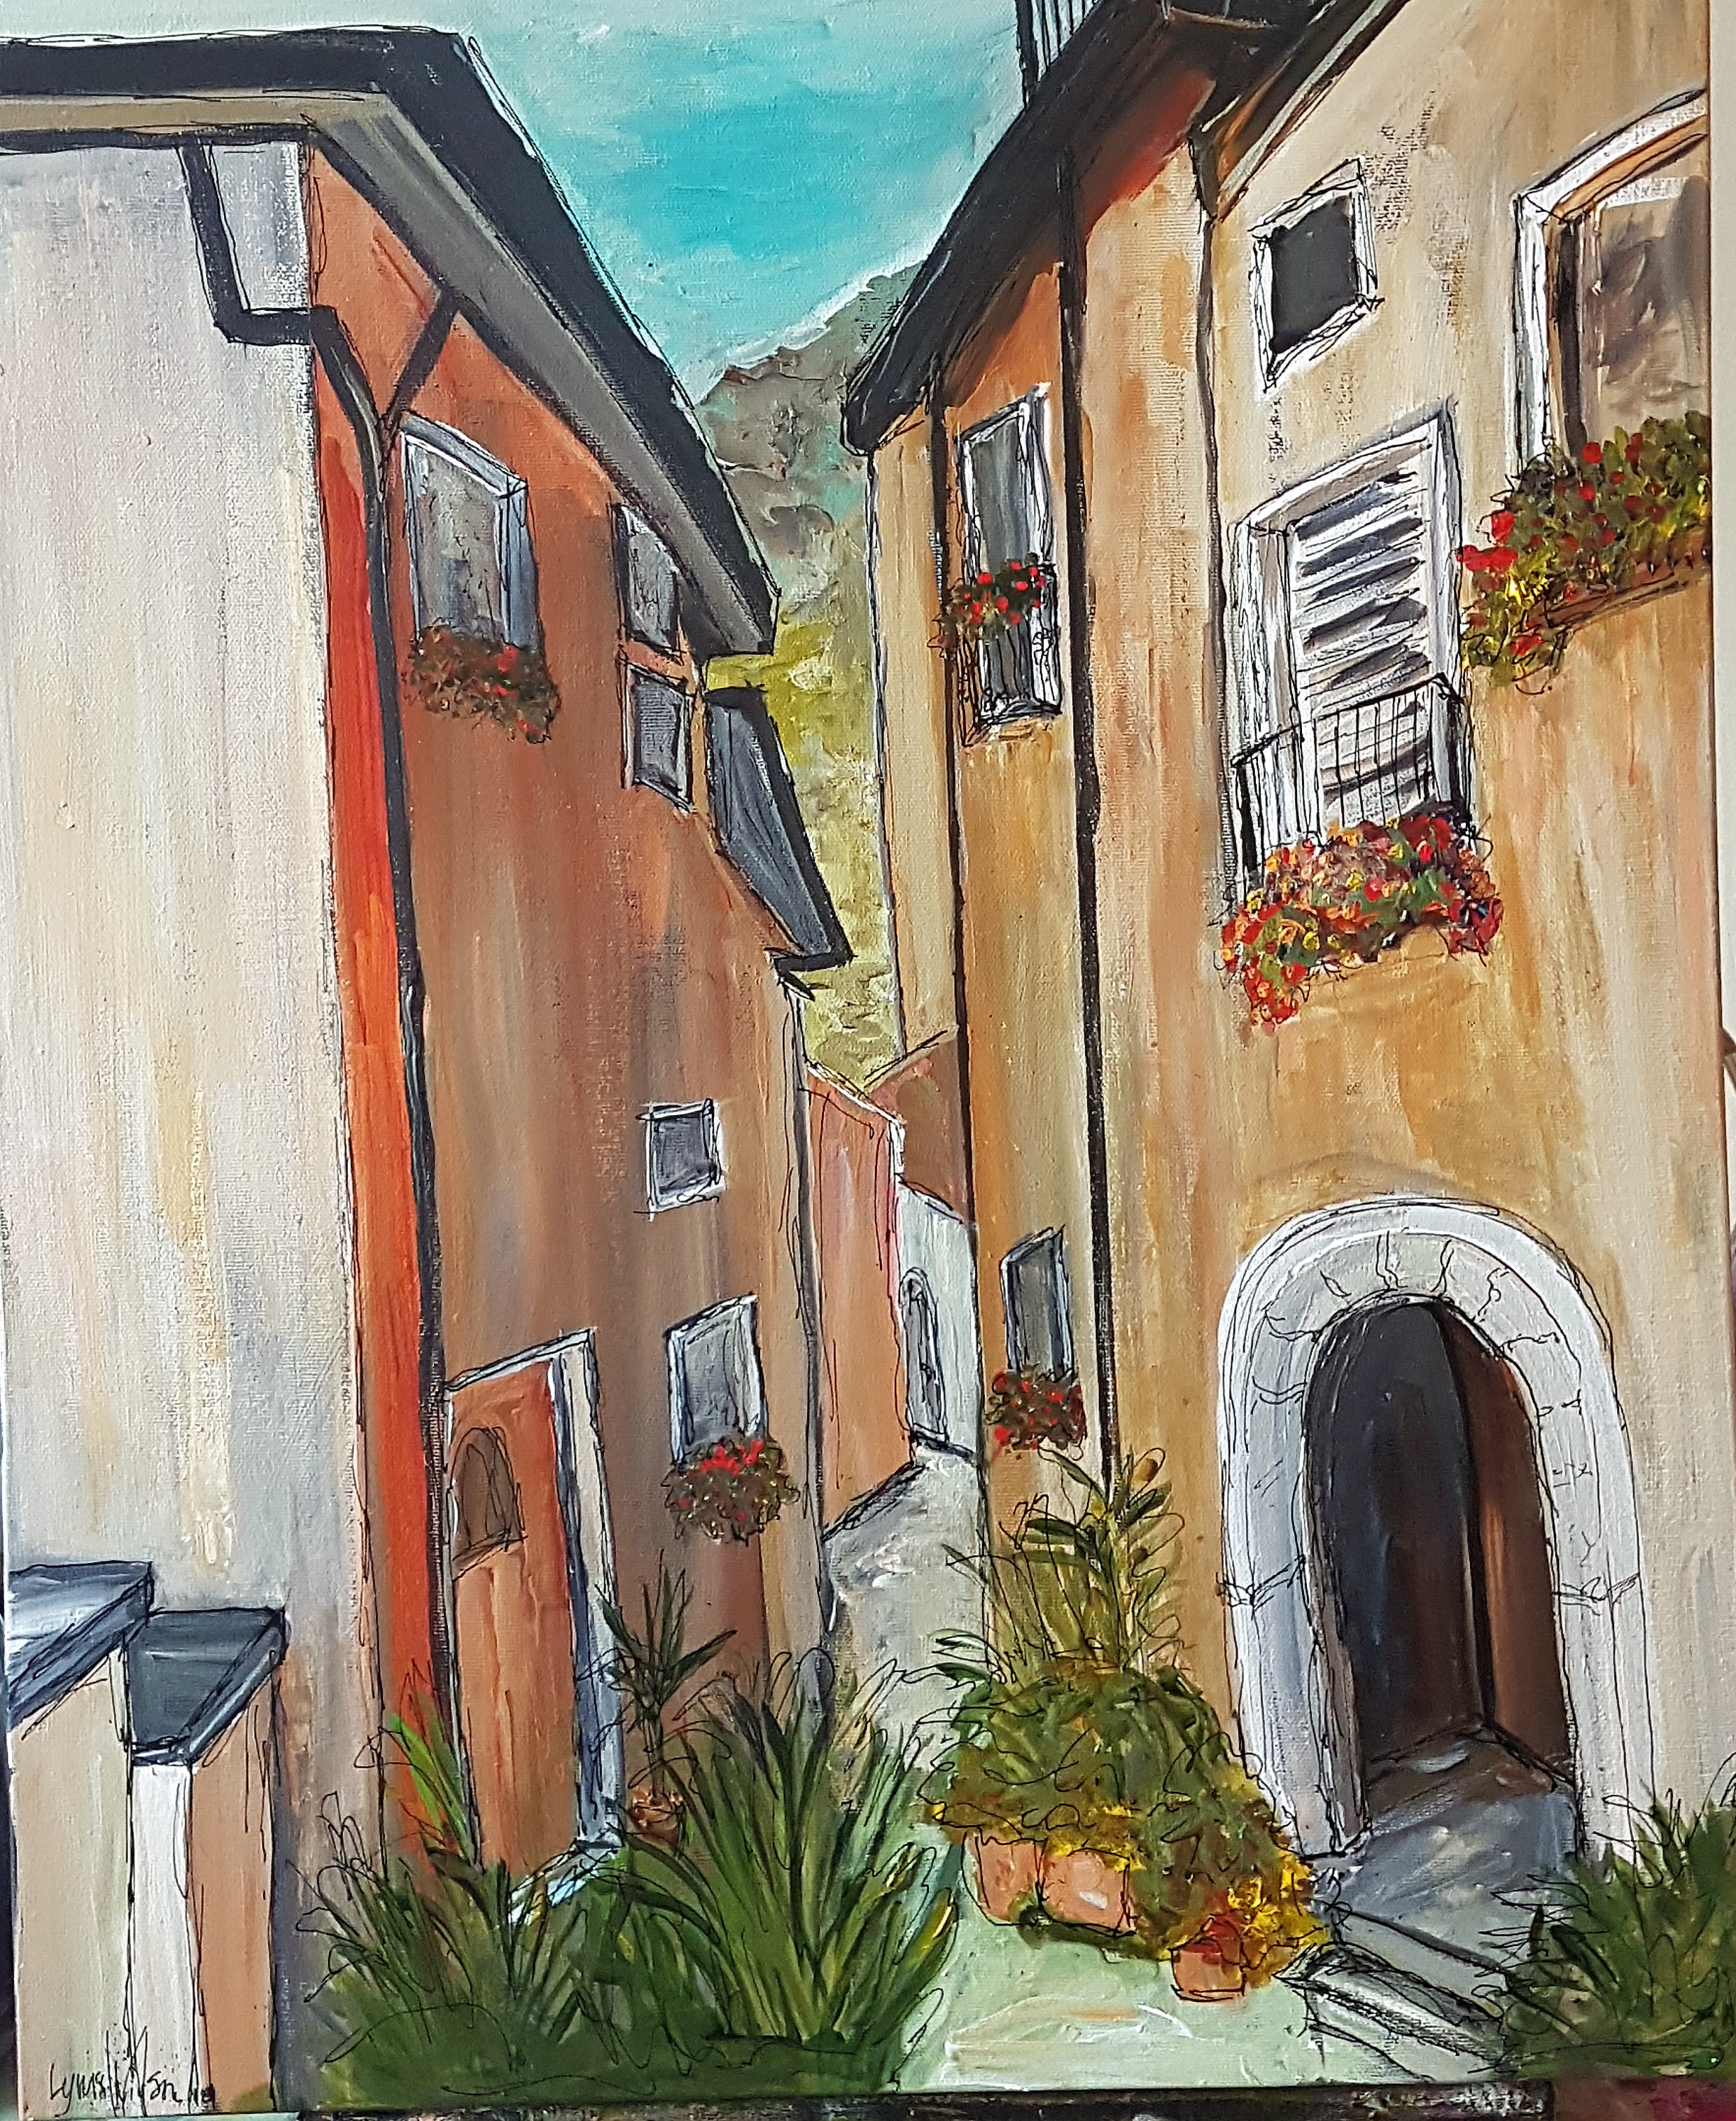 Italian Alley Painting Acrylic and India Ink Feb 3 2018 .jpg